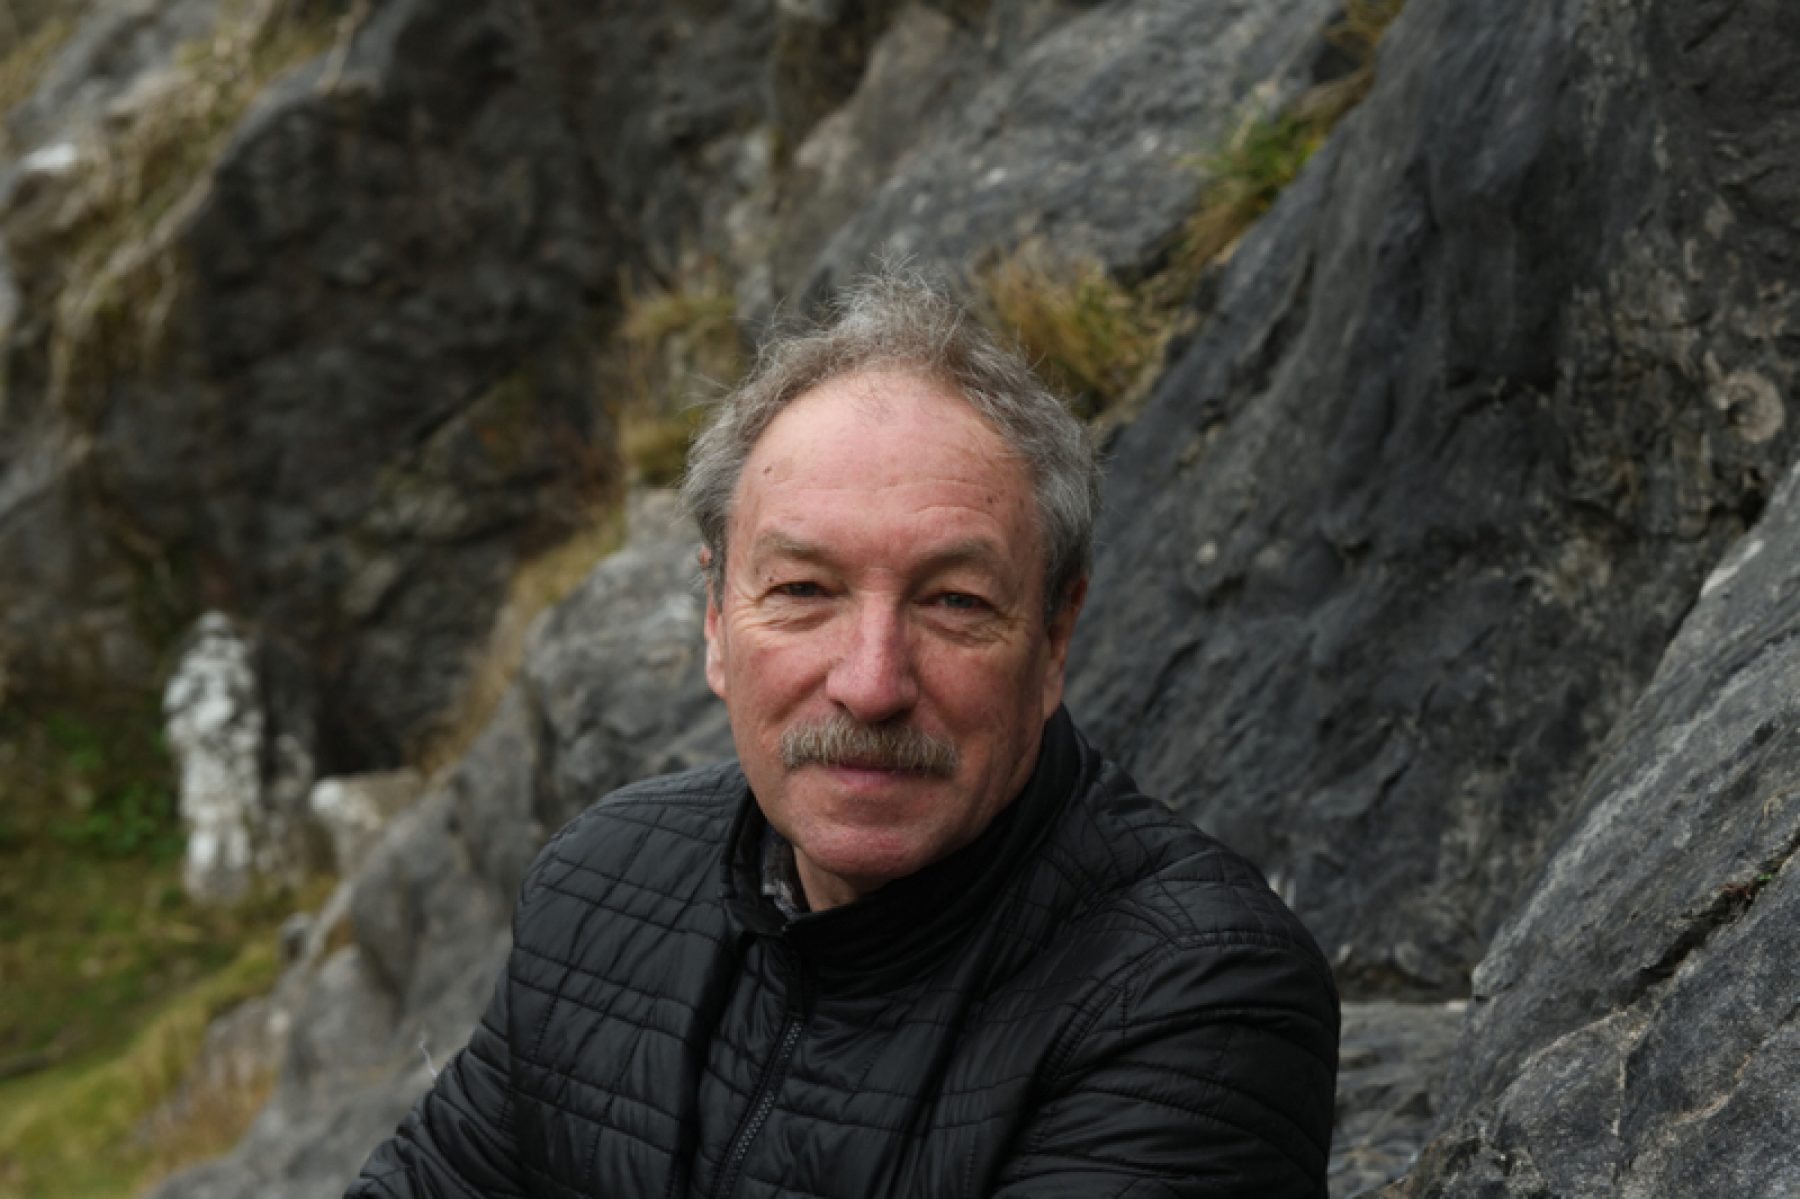 A white man with grey hair and moustache, wearing a black puffer jacket sits in front of grey rock forms with his hands in his pockets.